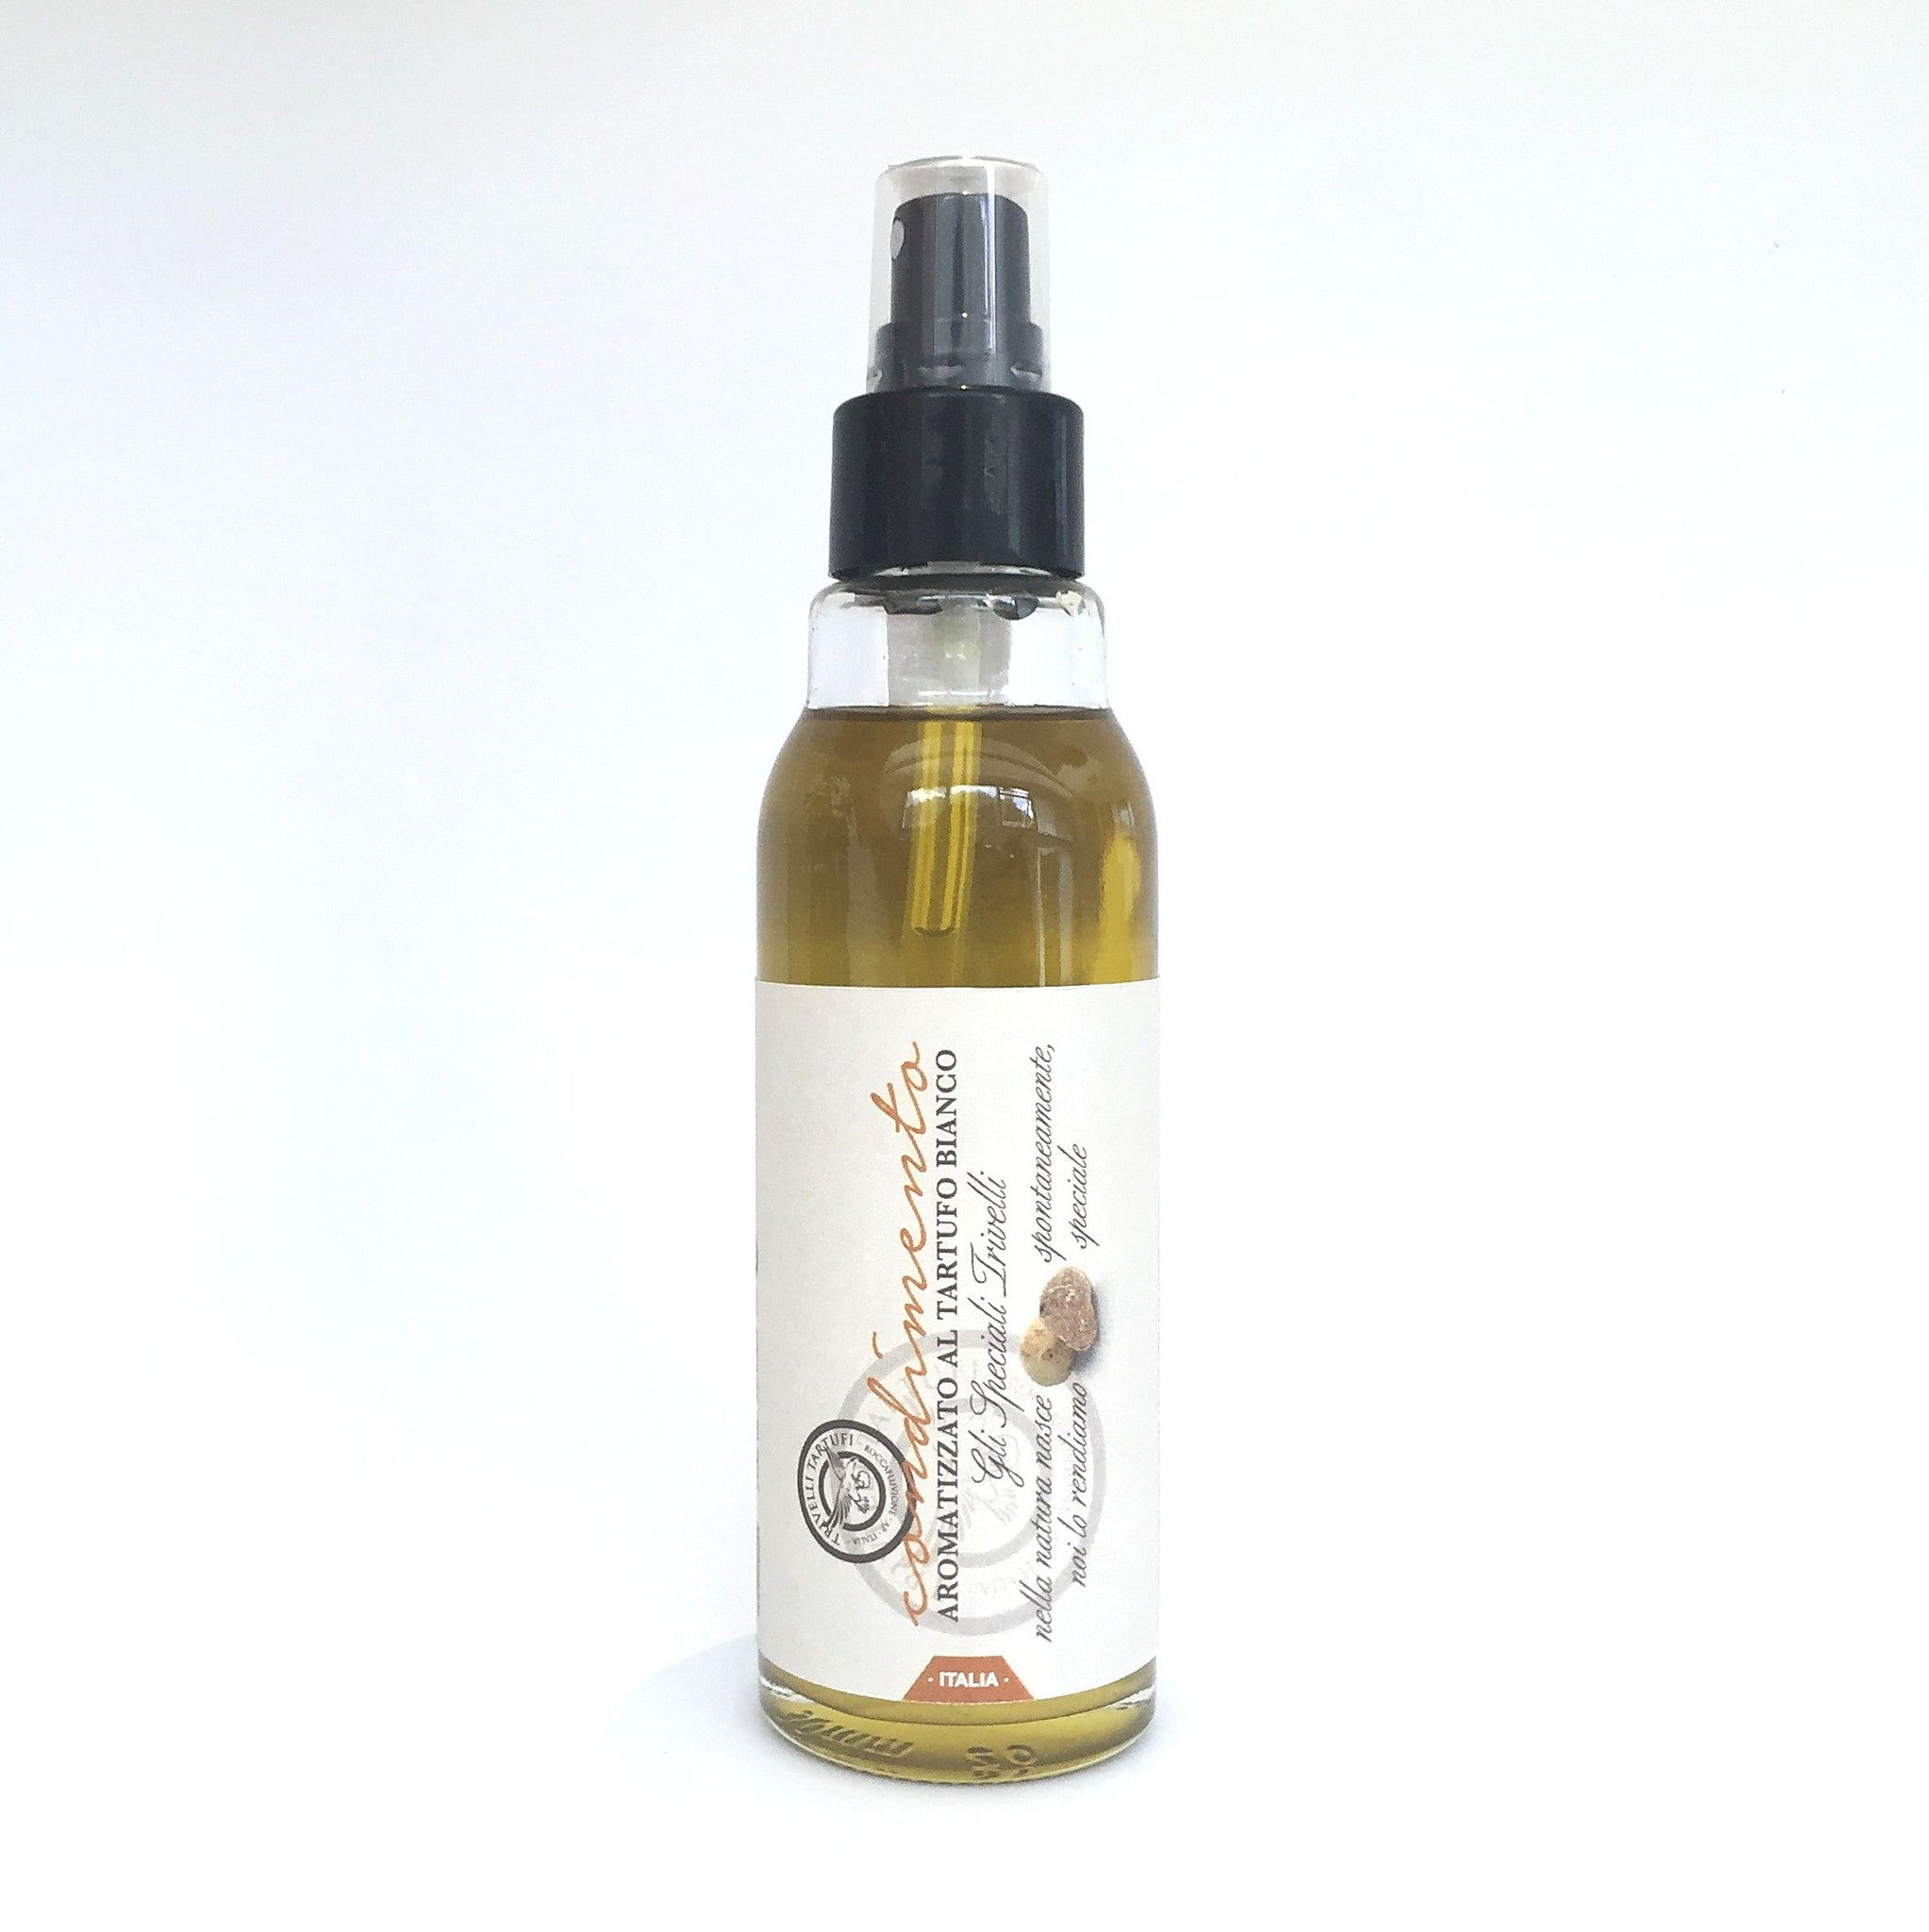 Emporio Antico White Truffle Oil Spray